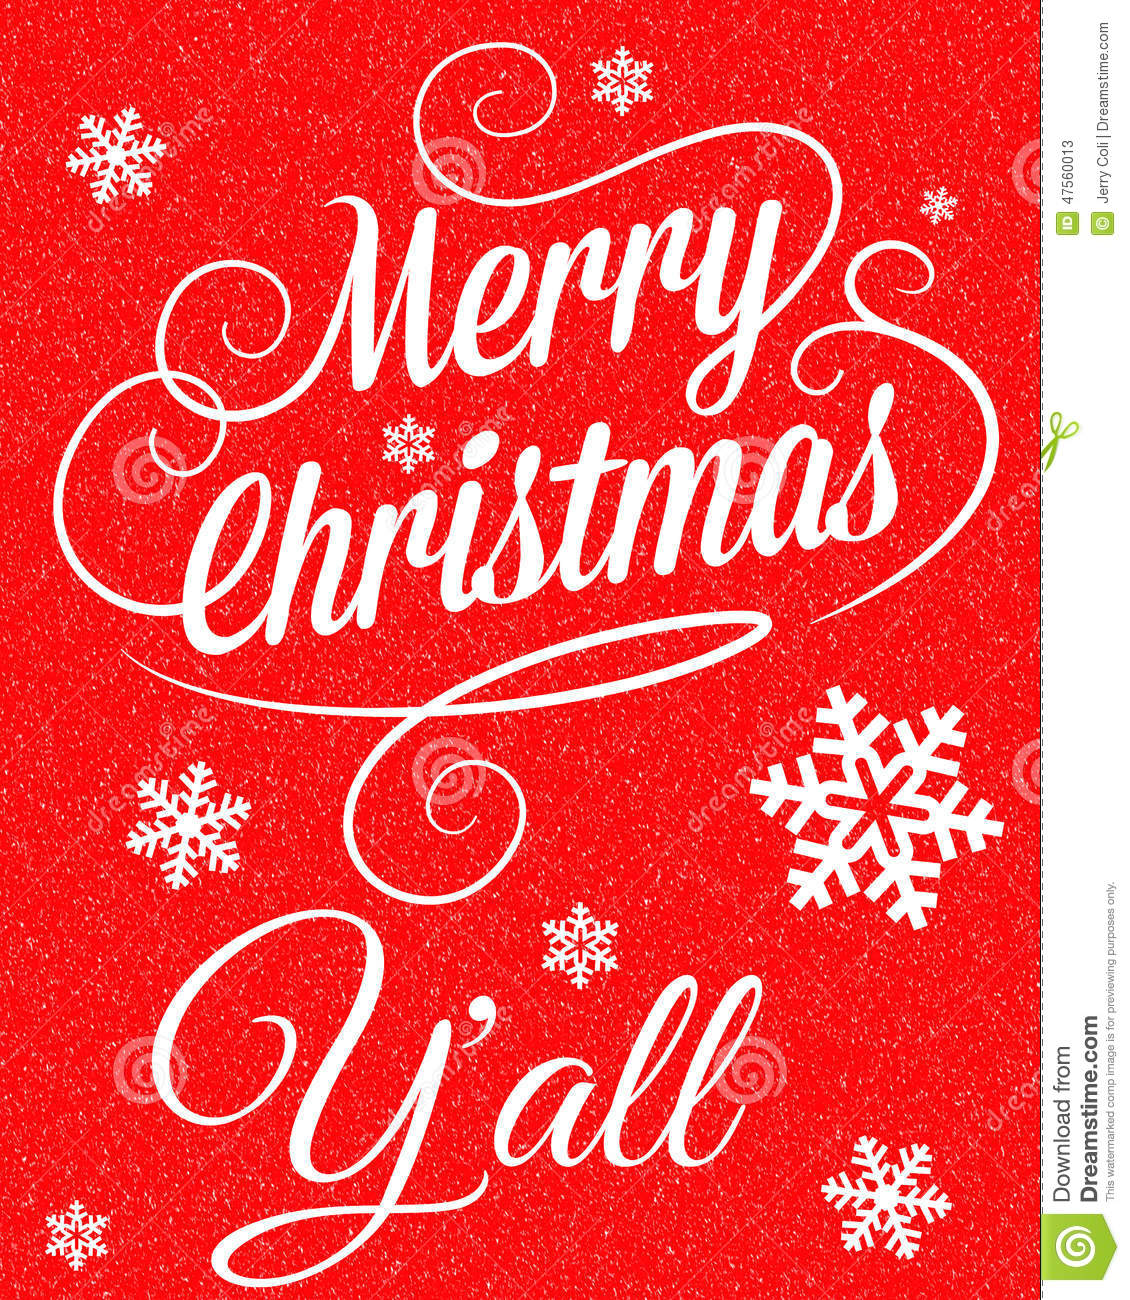 Merry christmas y all stock illustration image of